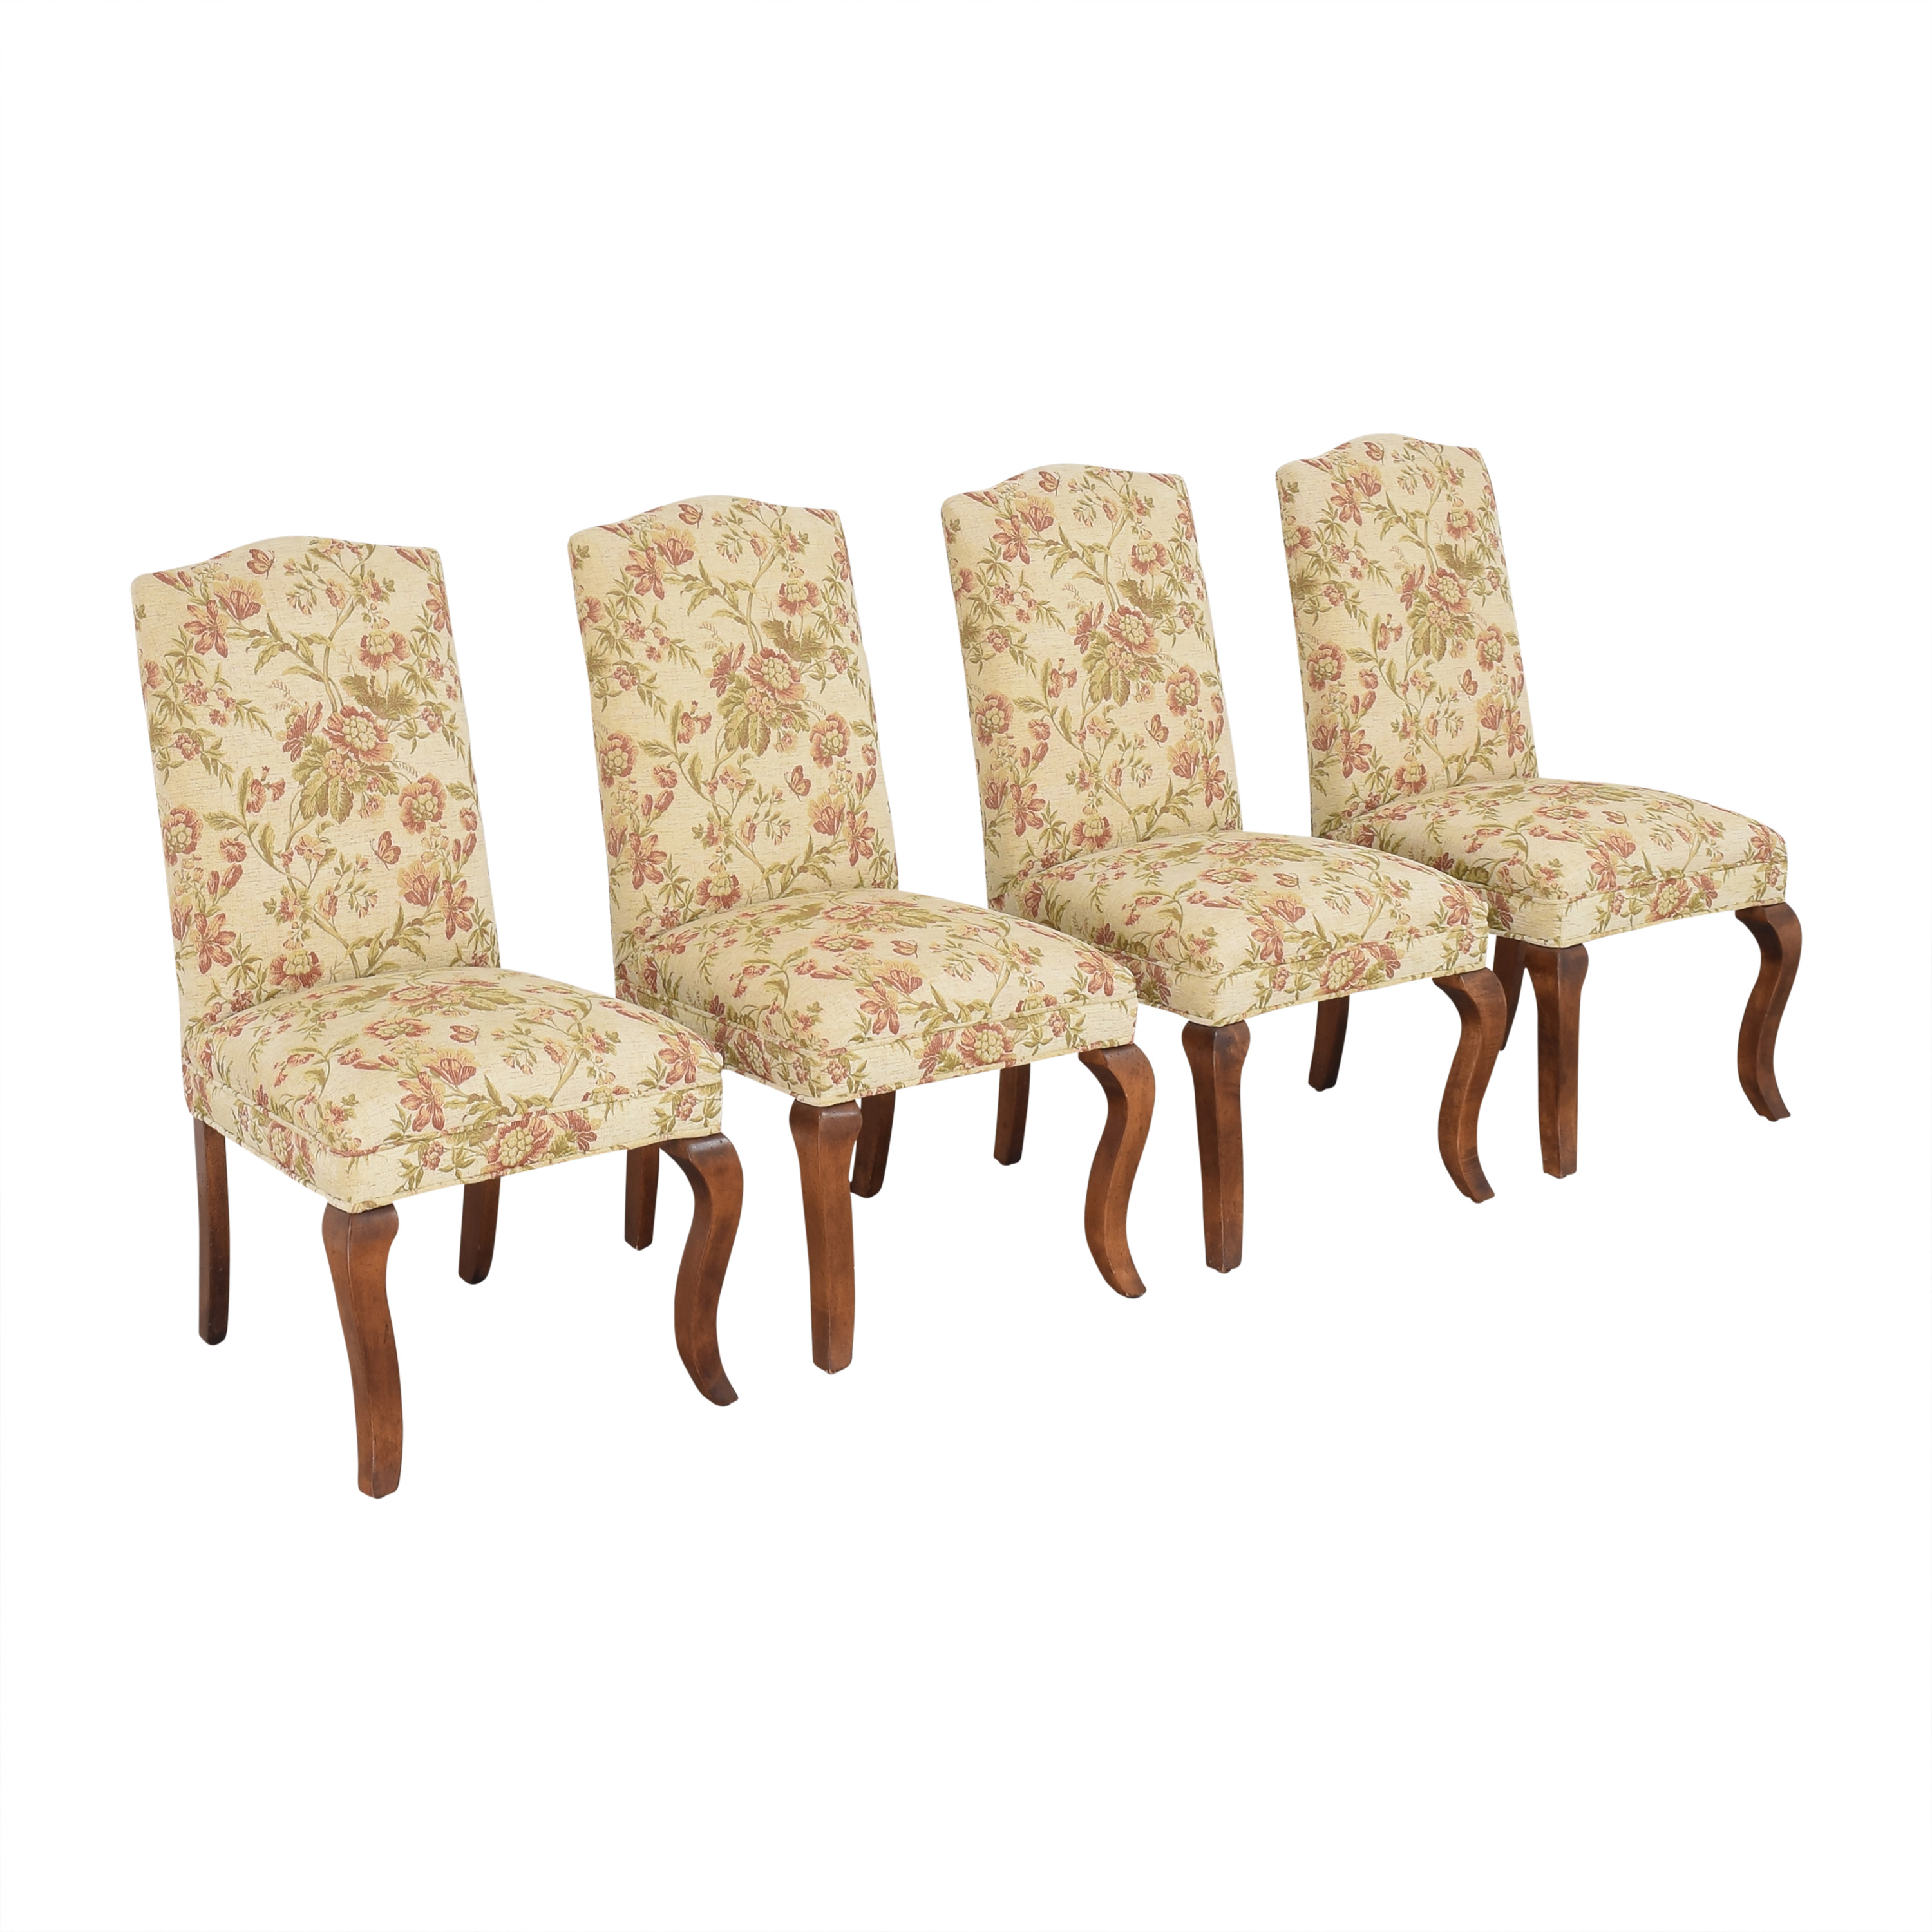 Queen Anne Upholstered Dining Chairs price